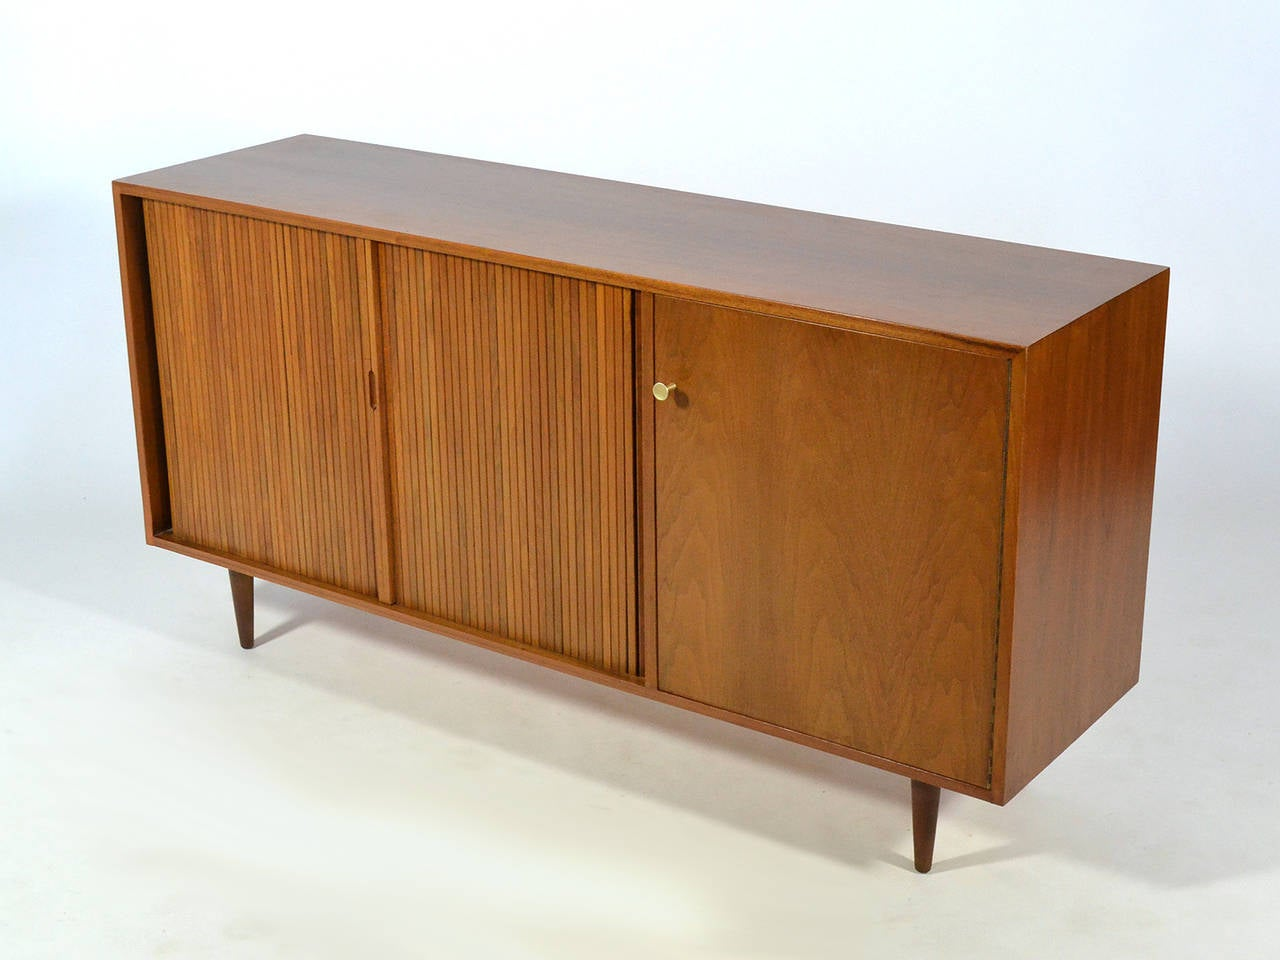 Metal Milo Baughman Credenza by Glenn of California For Sale